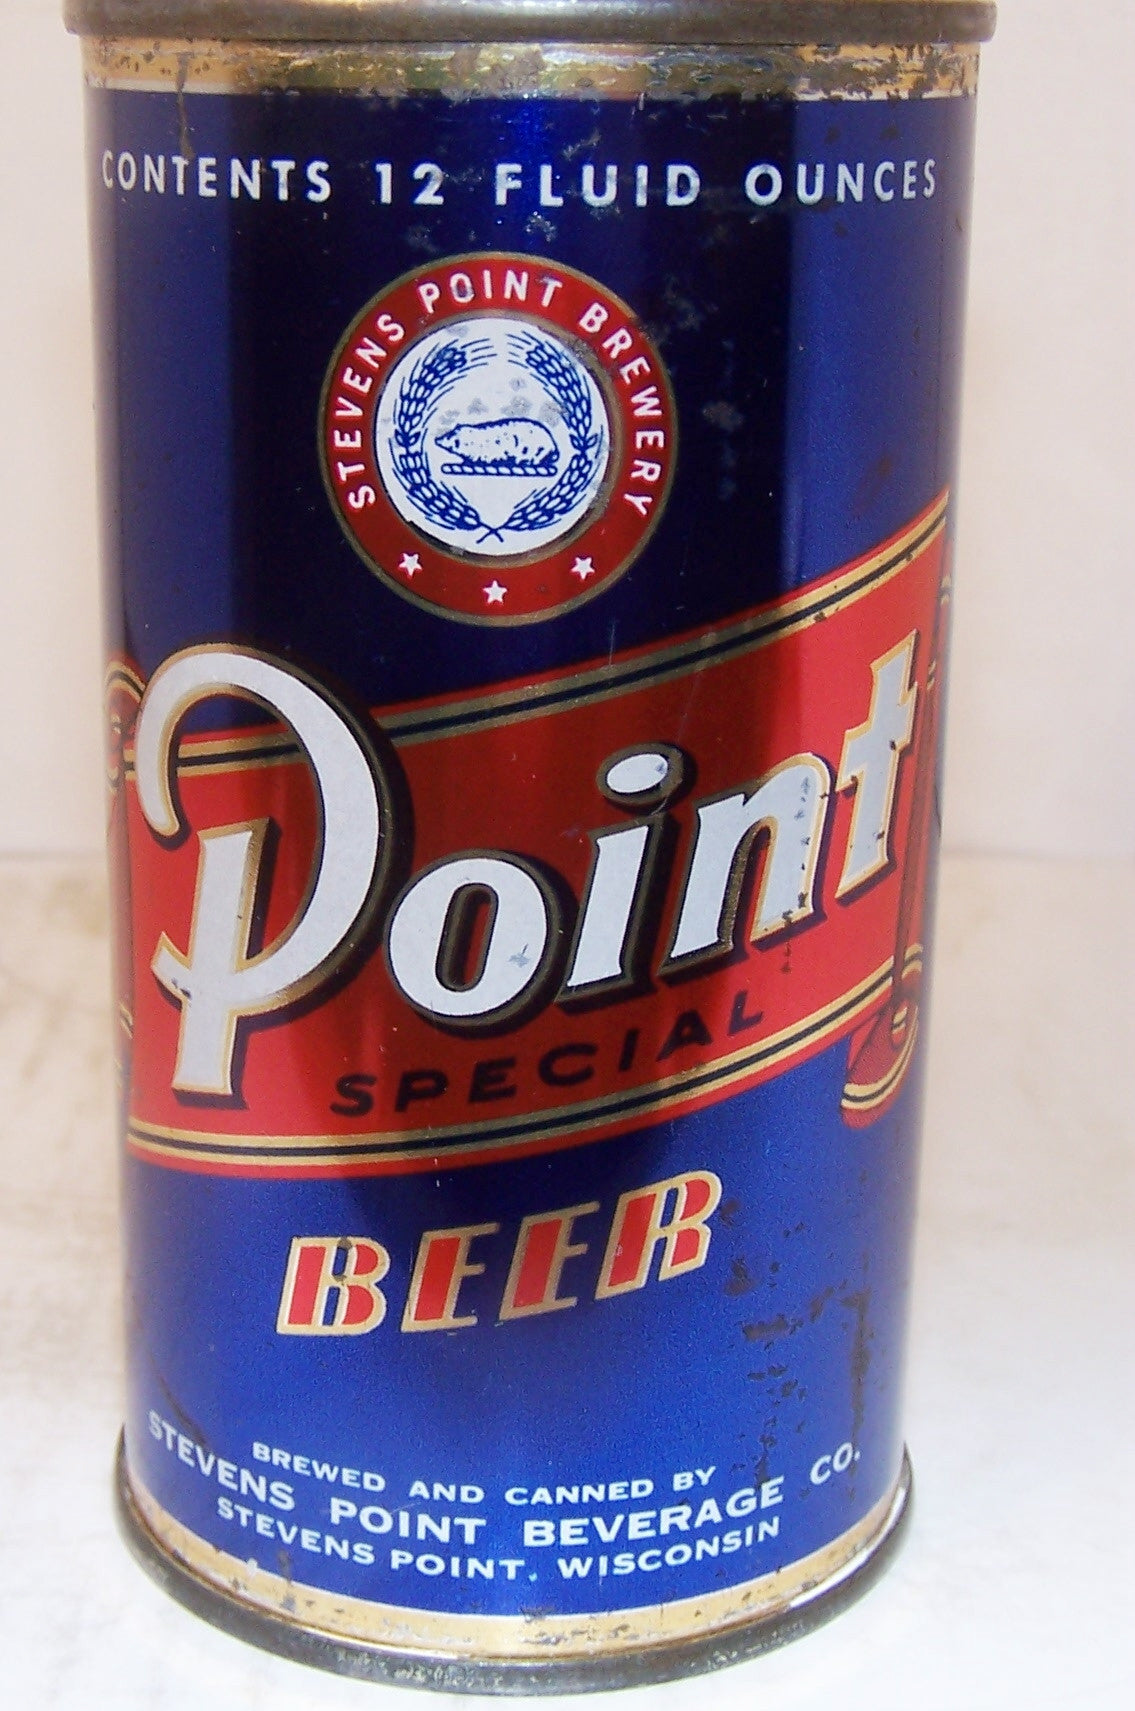 Point Special Beer, USBC 116-18, Grade 1- 04/14/17